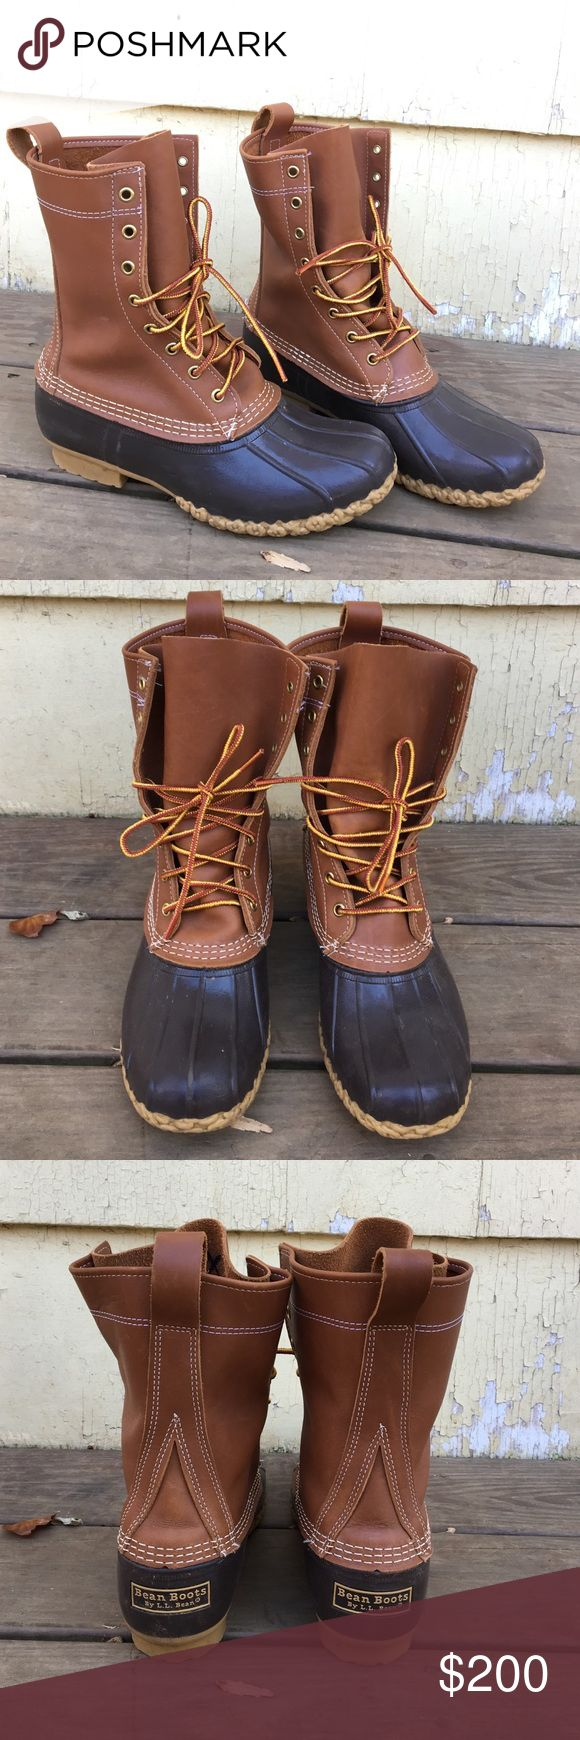 Women's L.L. Bean Boots Women's L.L. Bean Boots. Size 8. Medium width. Worn only once. Like new. These are on the taller side. About 10 inches high. Thinsulate lining. Price would be firm on these as they are hard to find and most are on backorder. Lastly, NO TRADES! L.L. Bean Shoes Winter & Rain Boots